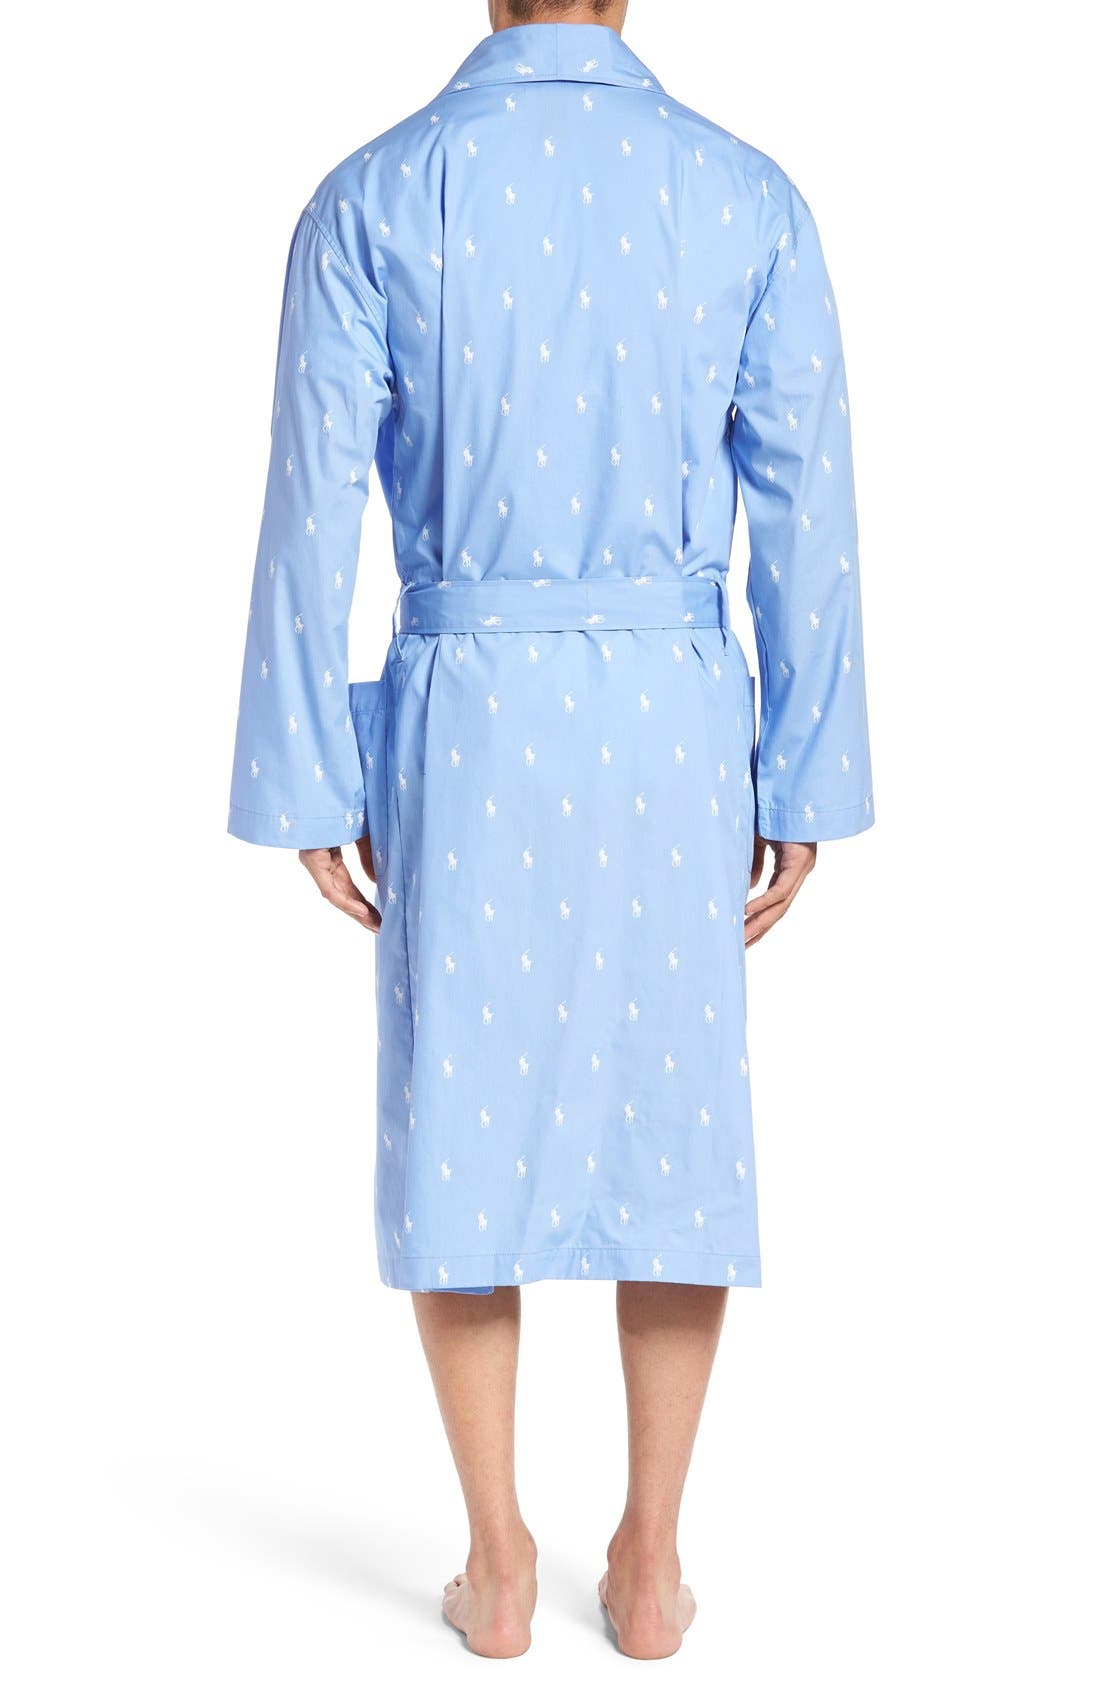 POLO RALPH LAUREN,                             'Polo Player' Cotton Robe,                             Alternate thumbnail 2, color,                             BEACH BLUE